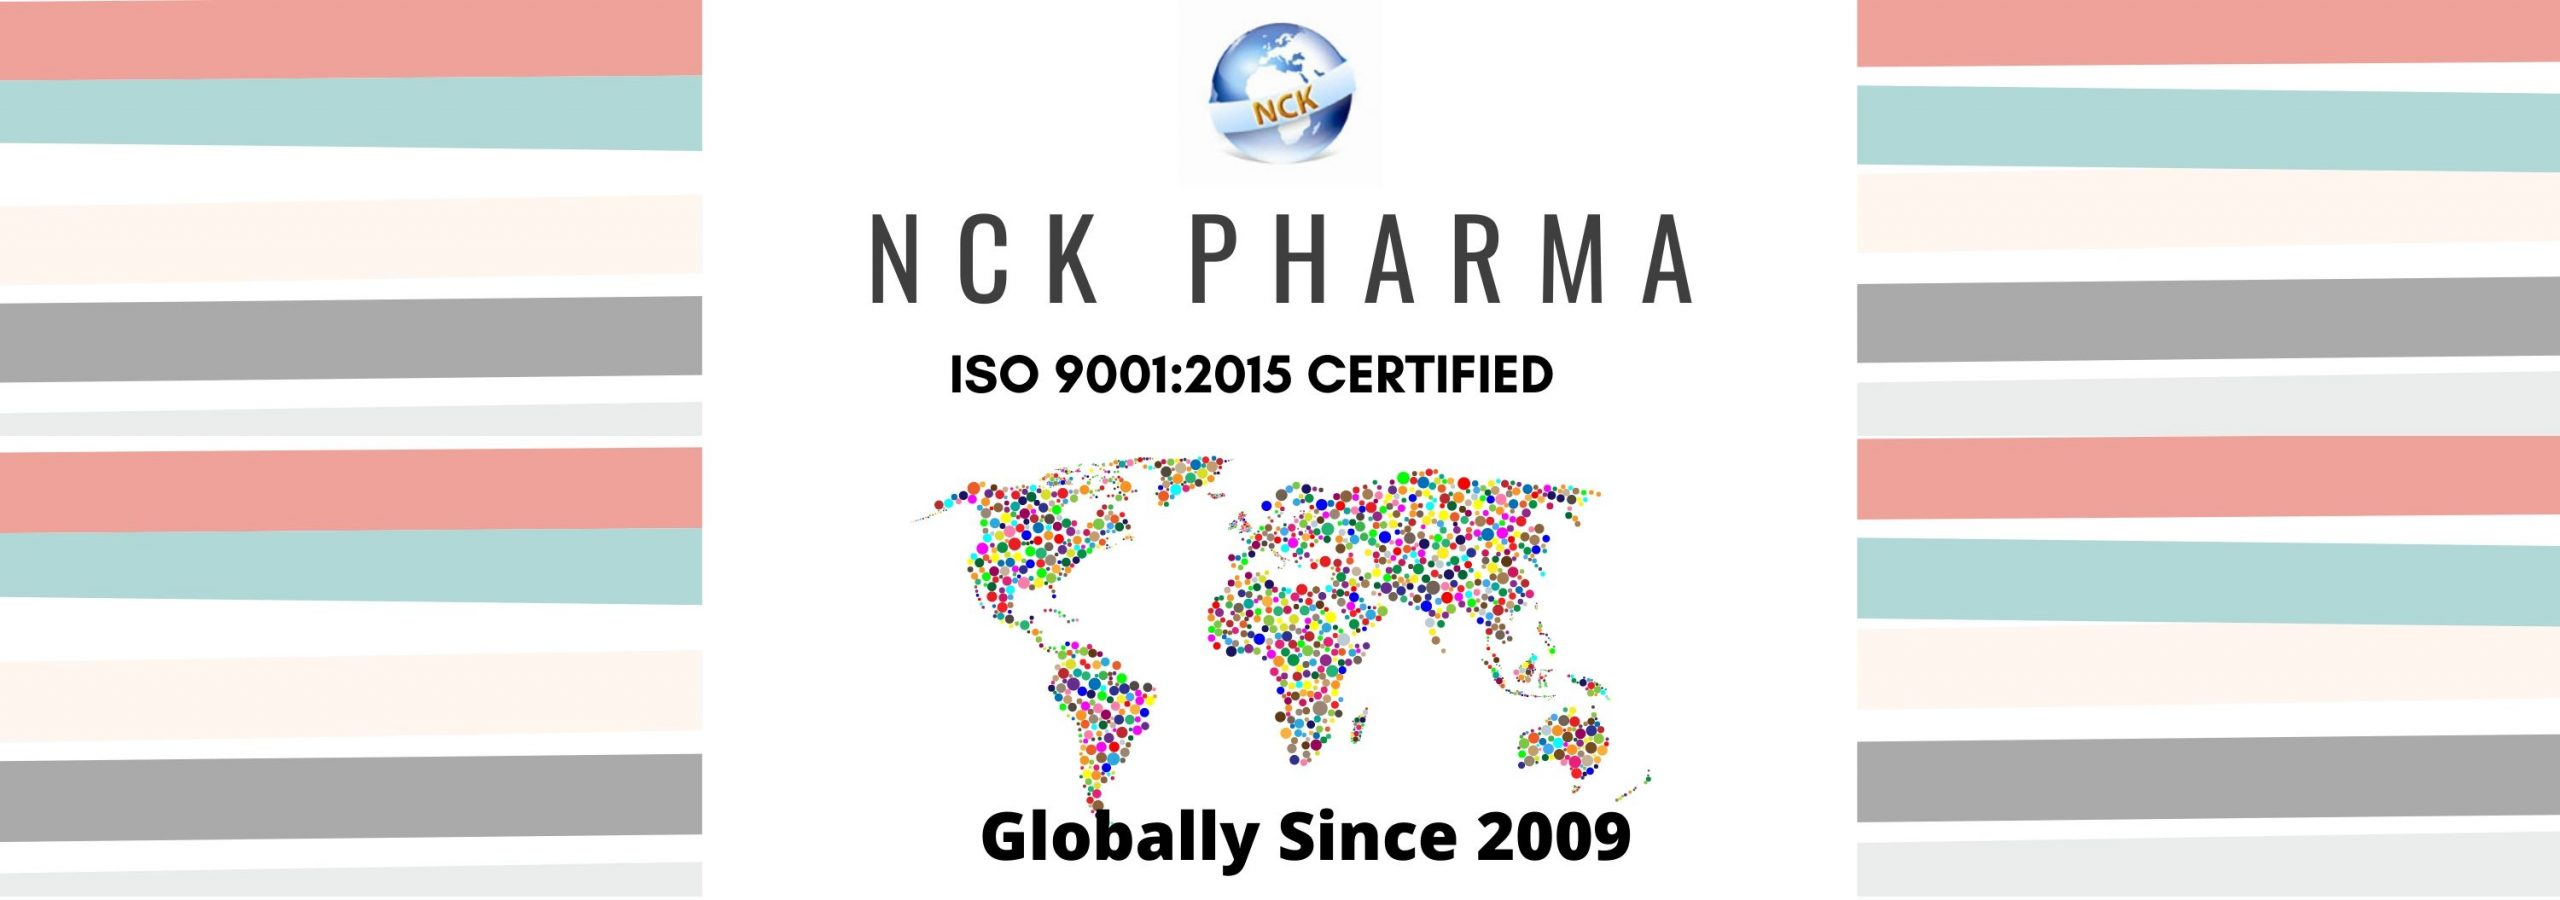 nckpharma about us